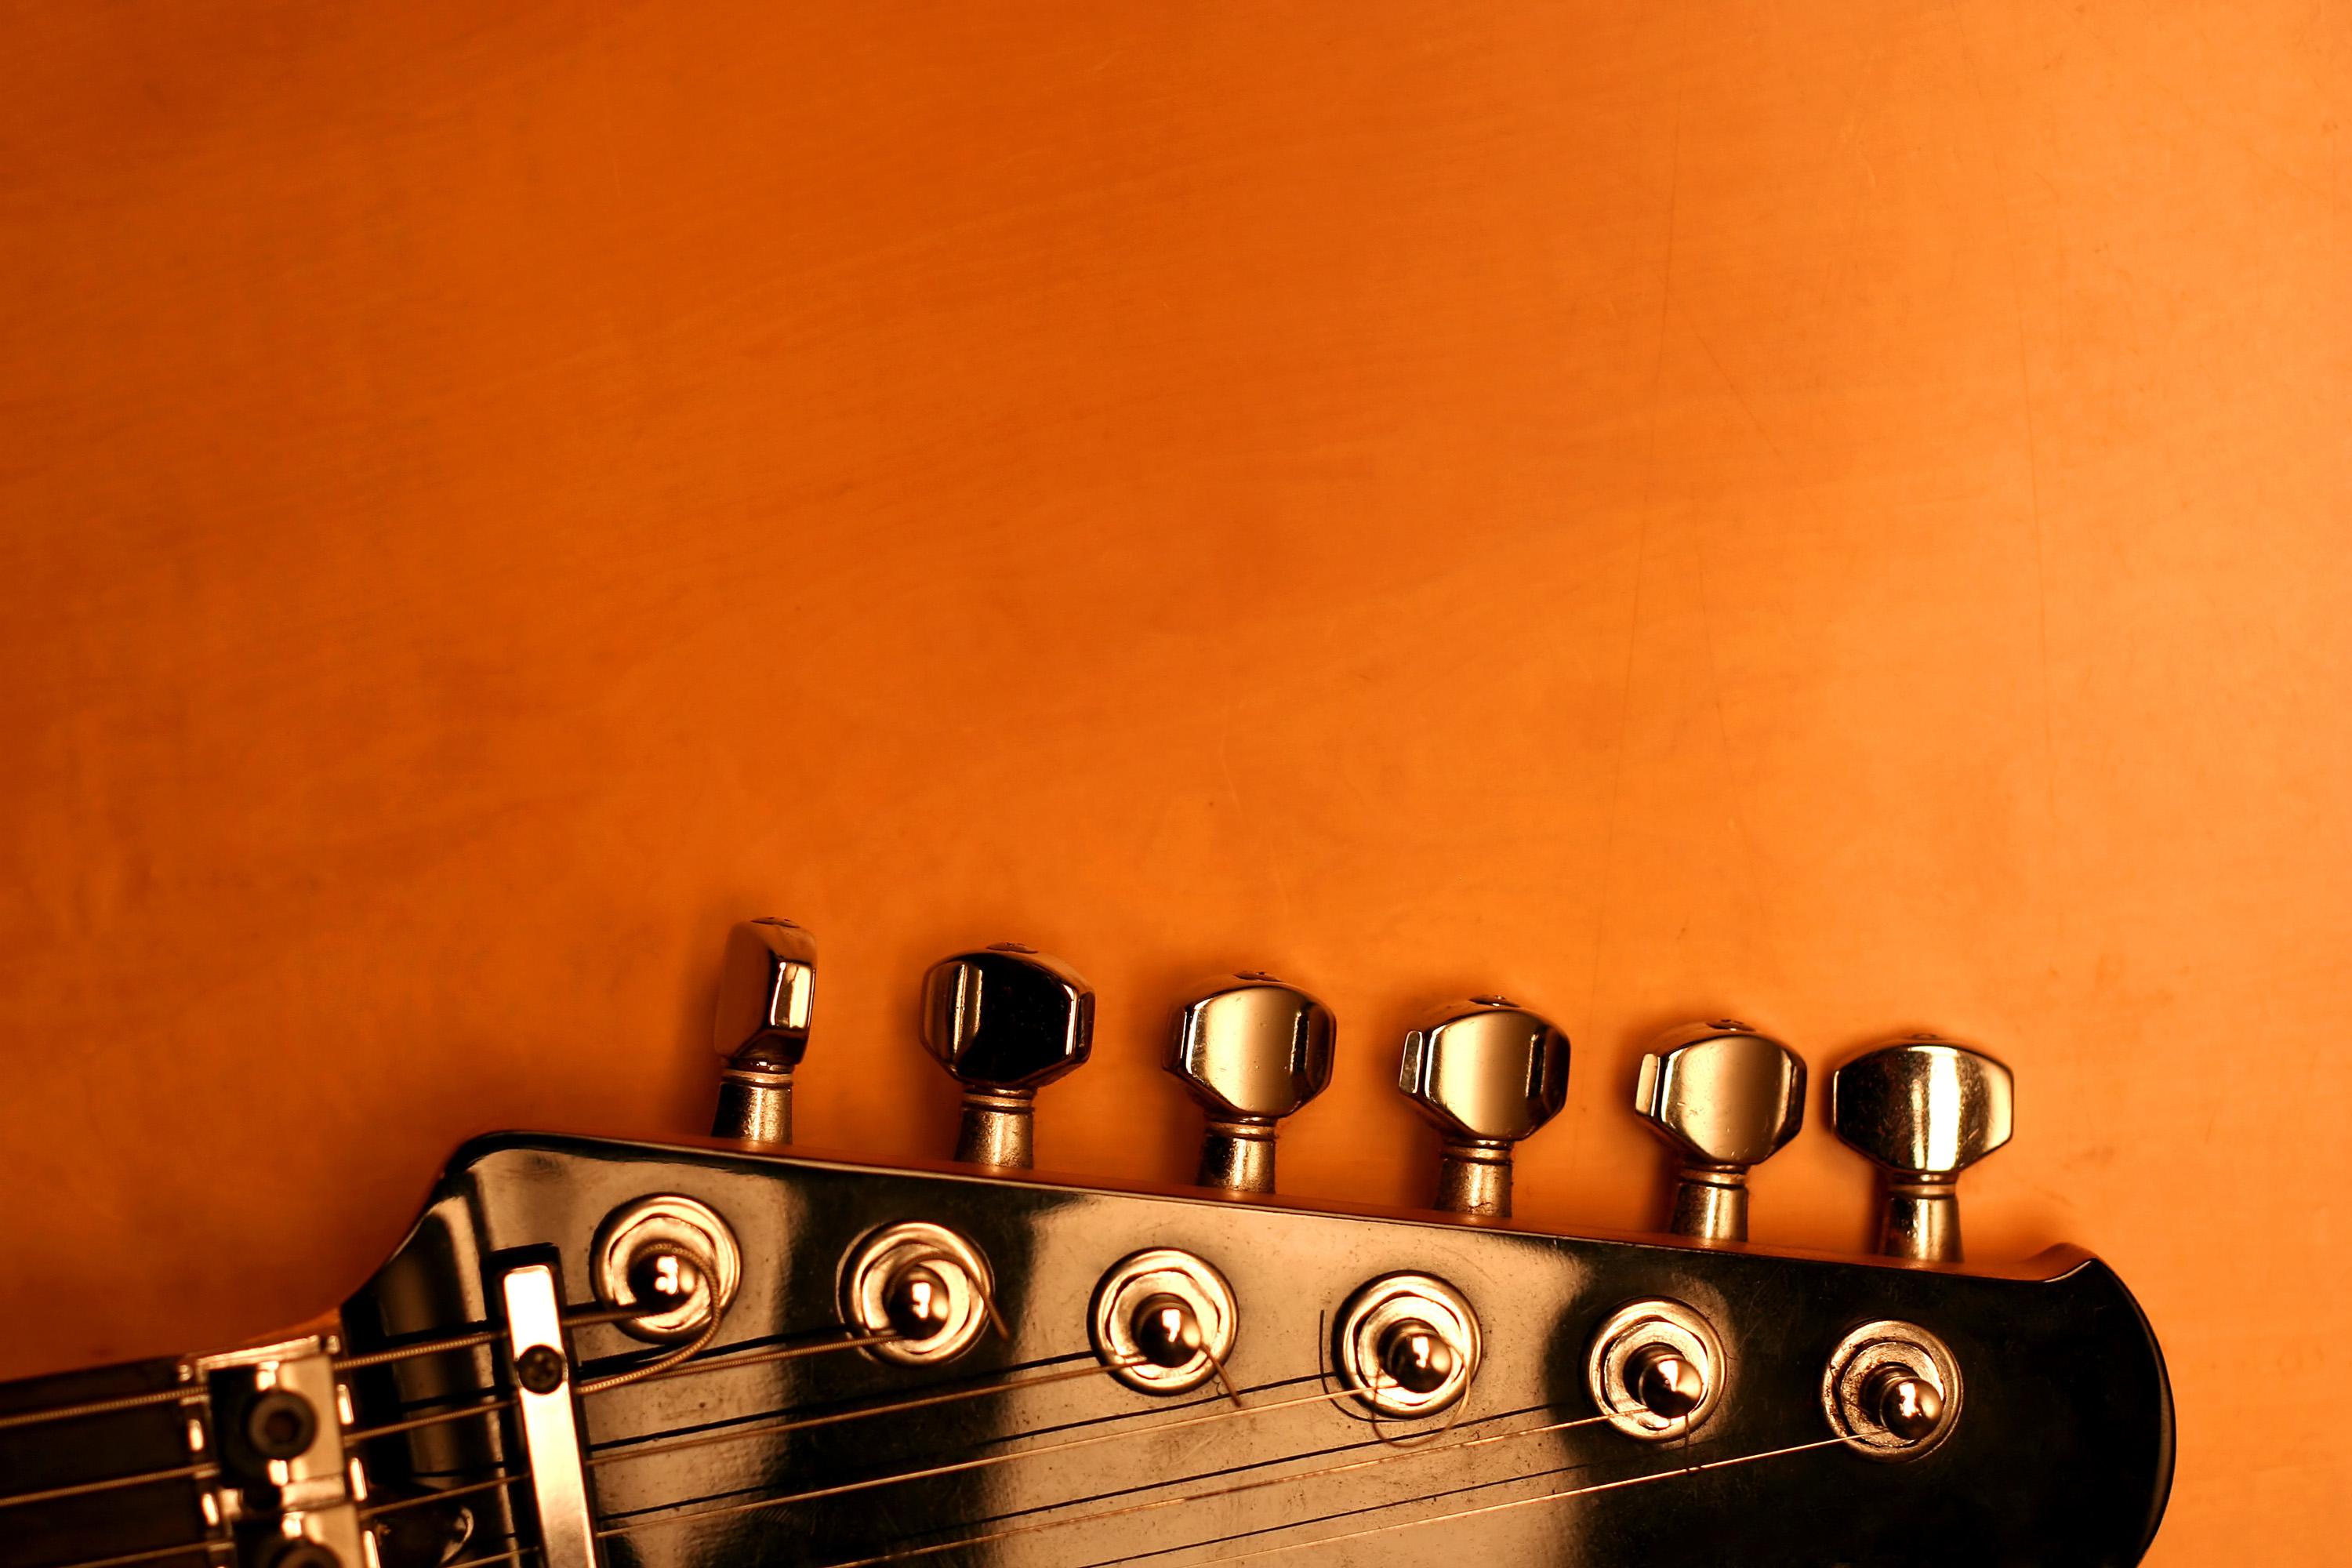 guitar head pic with orange background hd wallpapers 3000 x 2000jpg 3000x2000